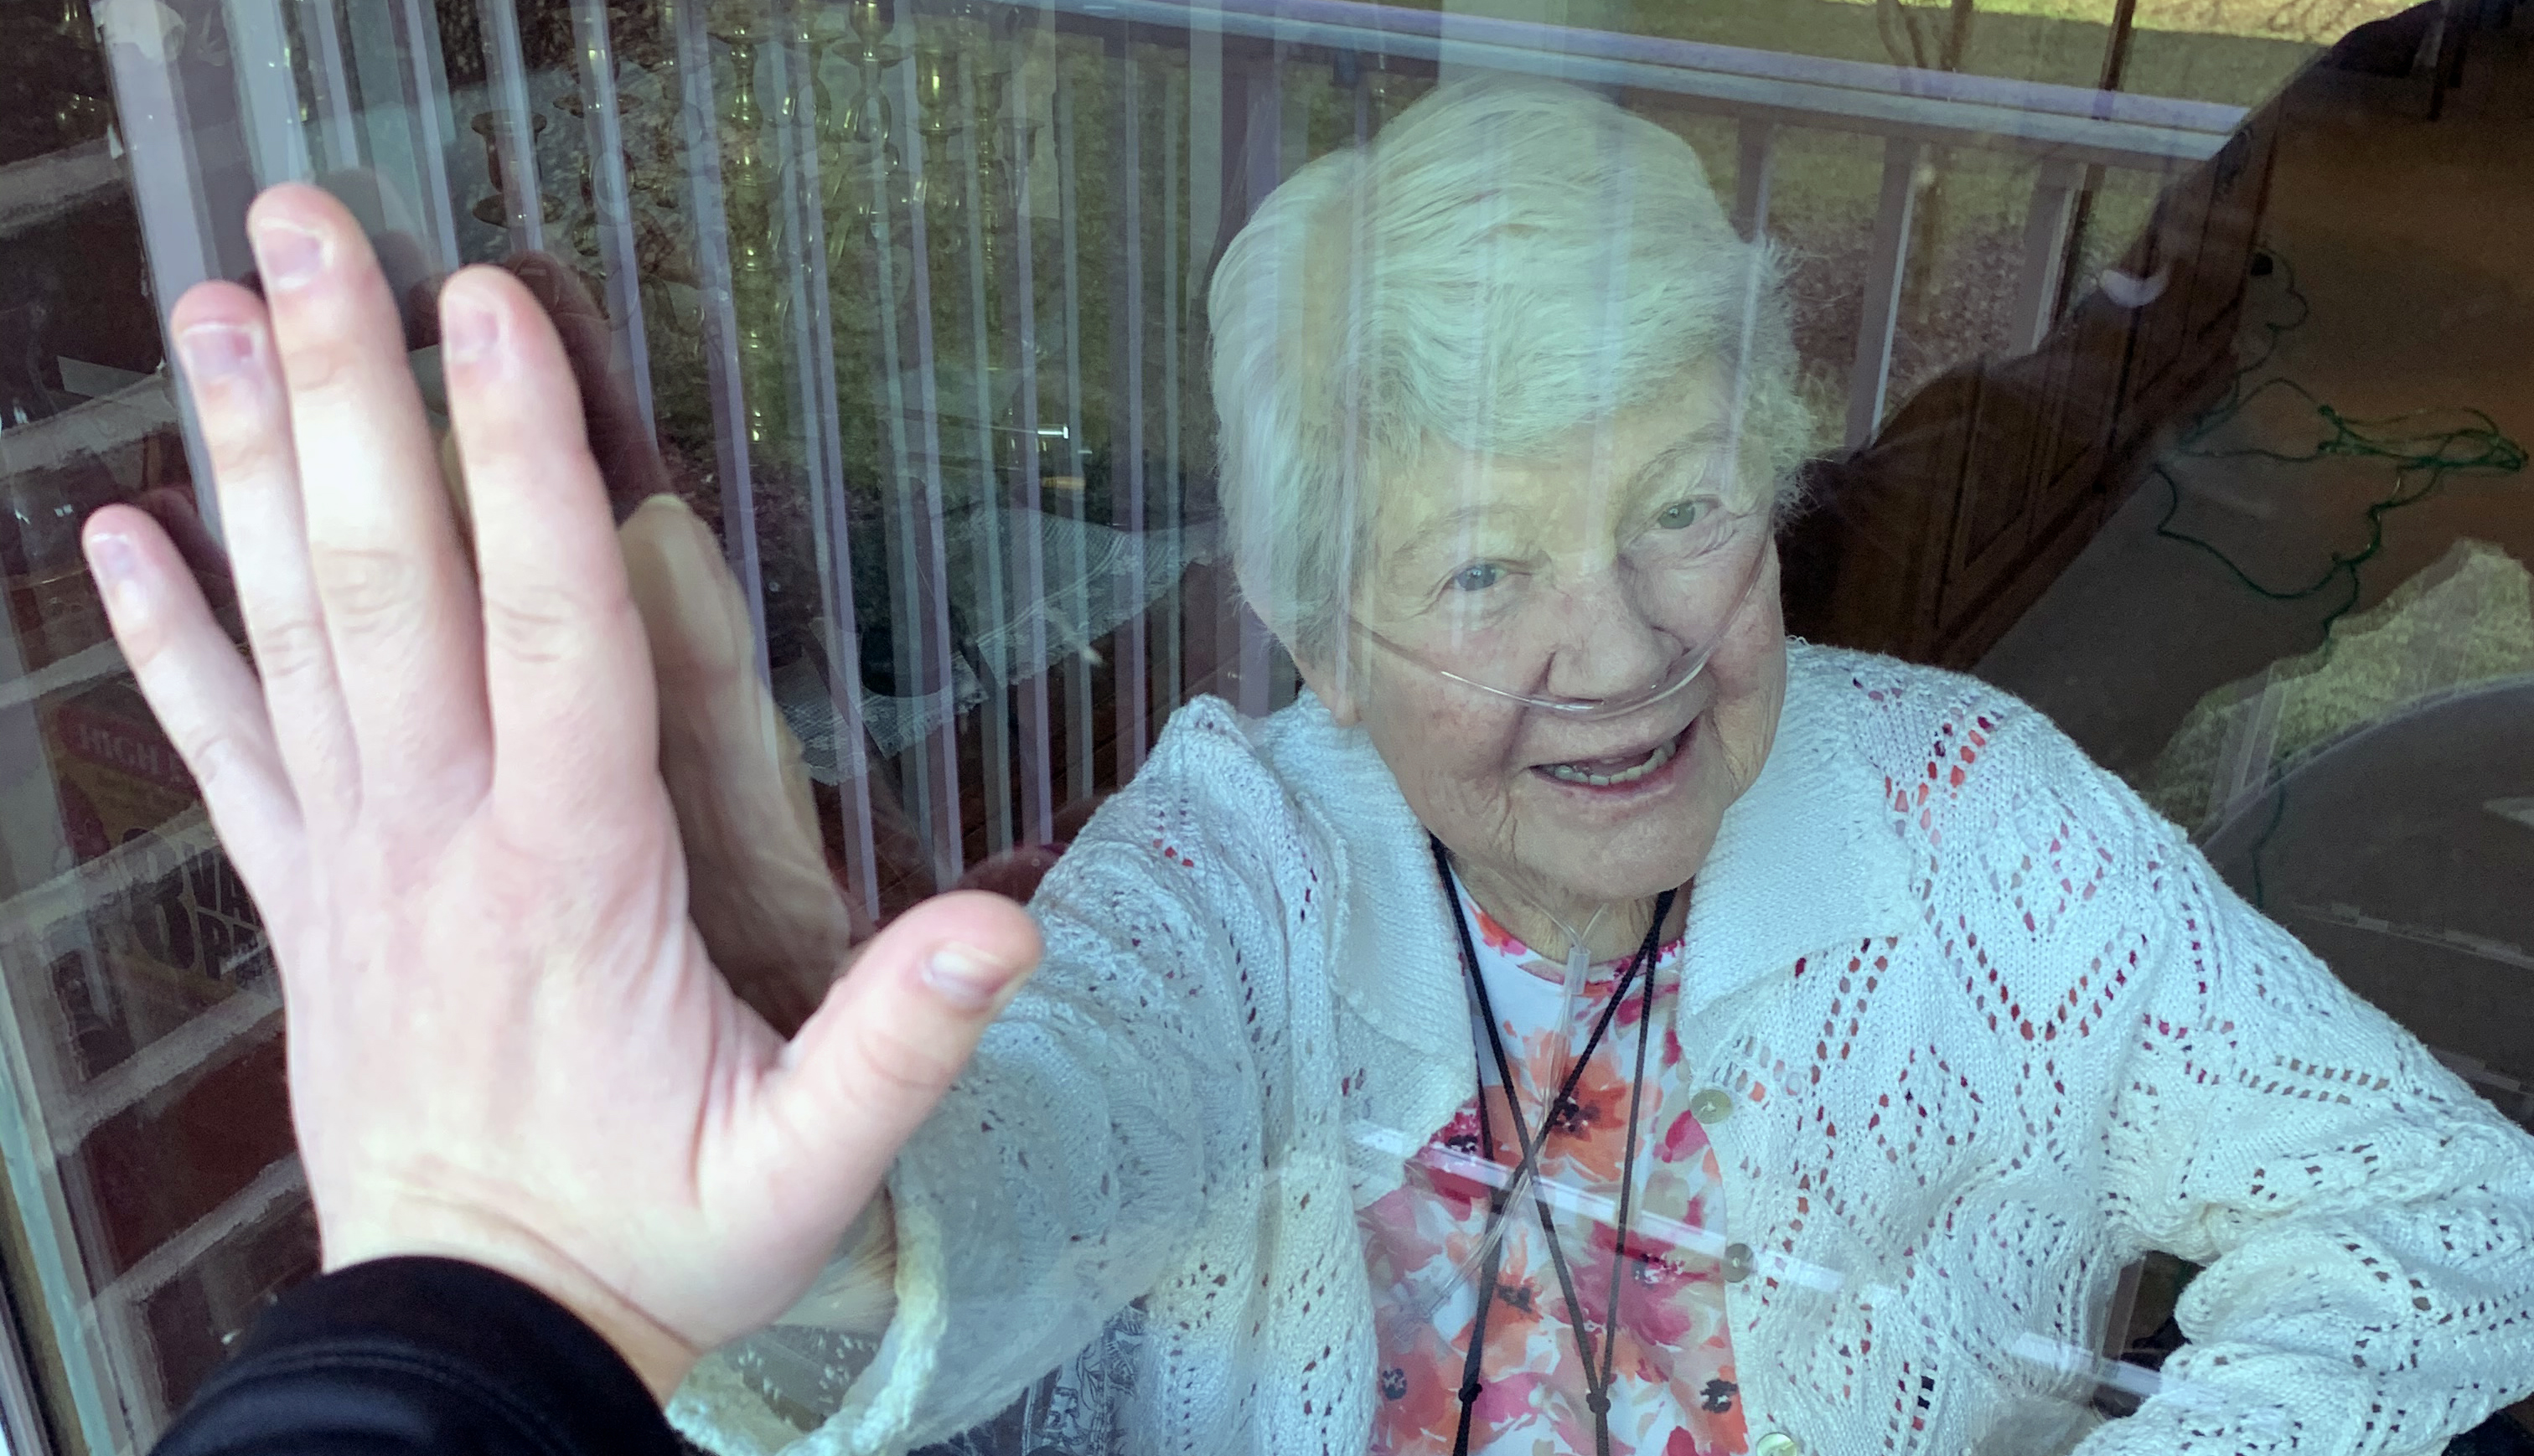 a nursing home resident and a person outside the window touch hands on either side of the glass